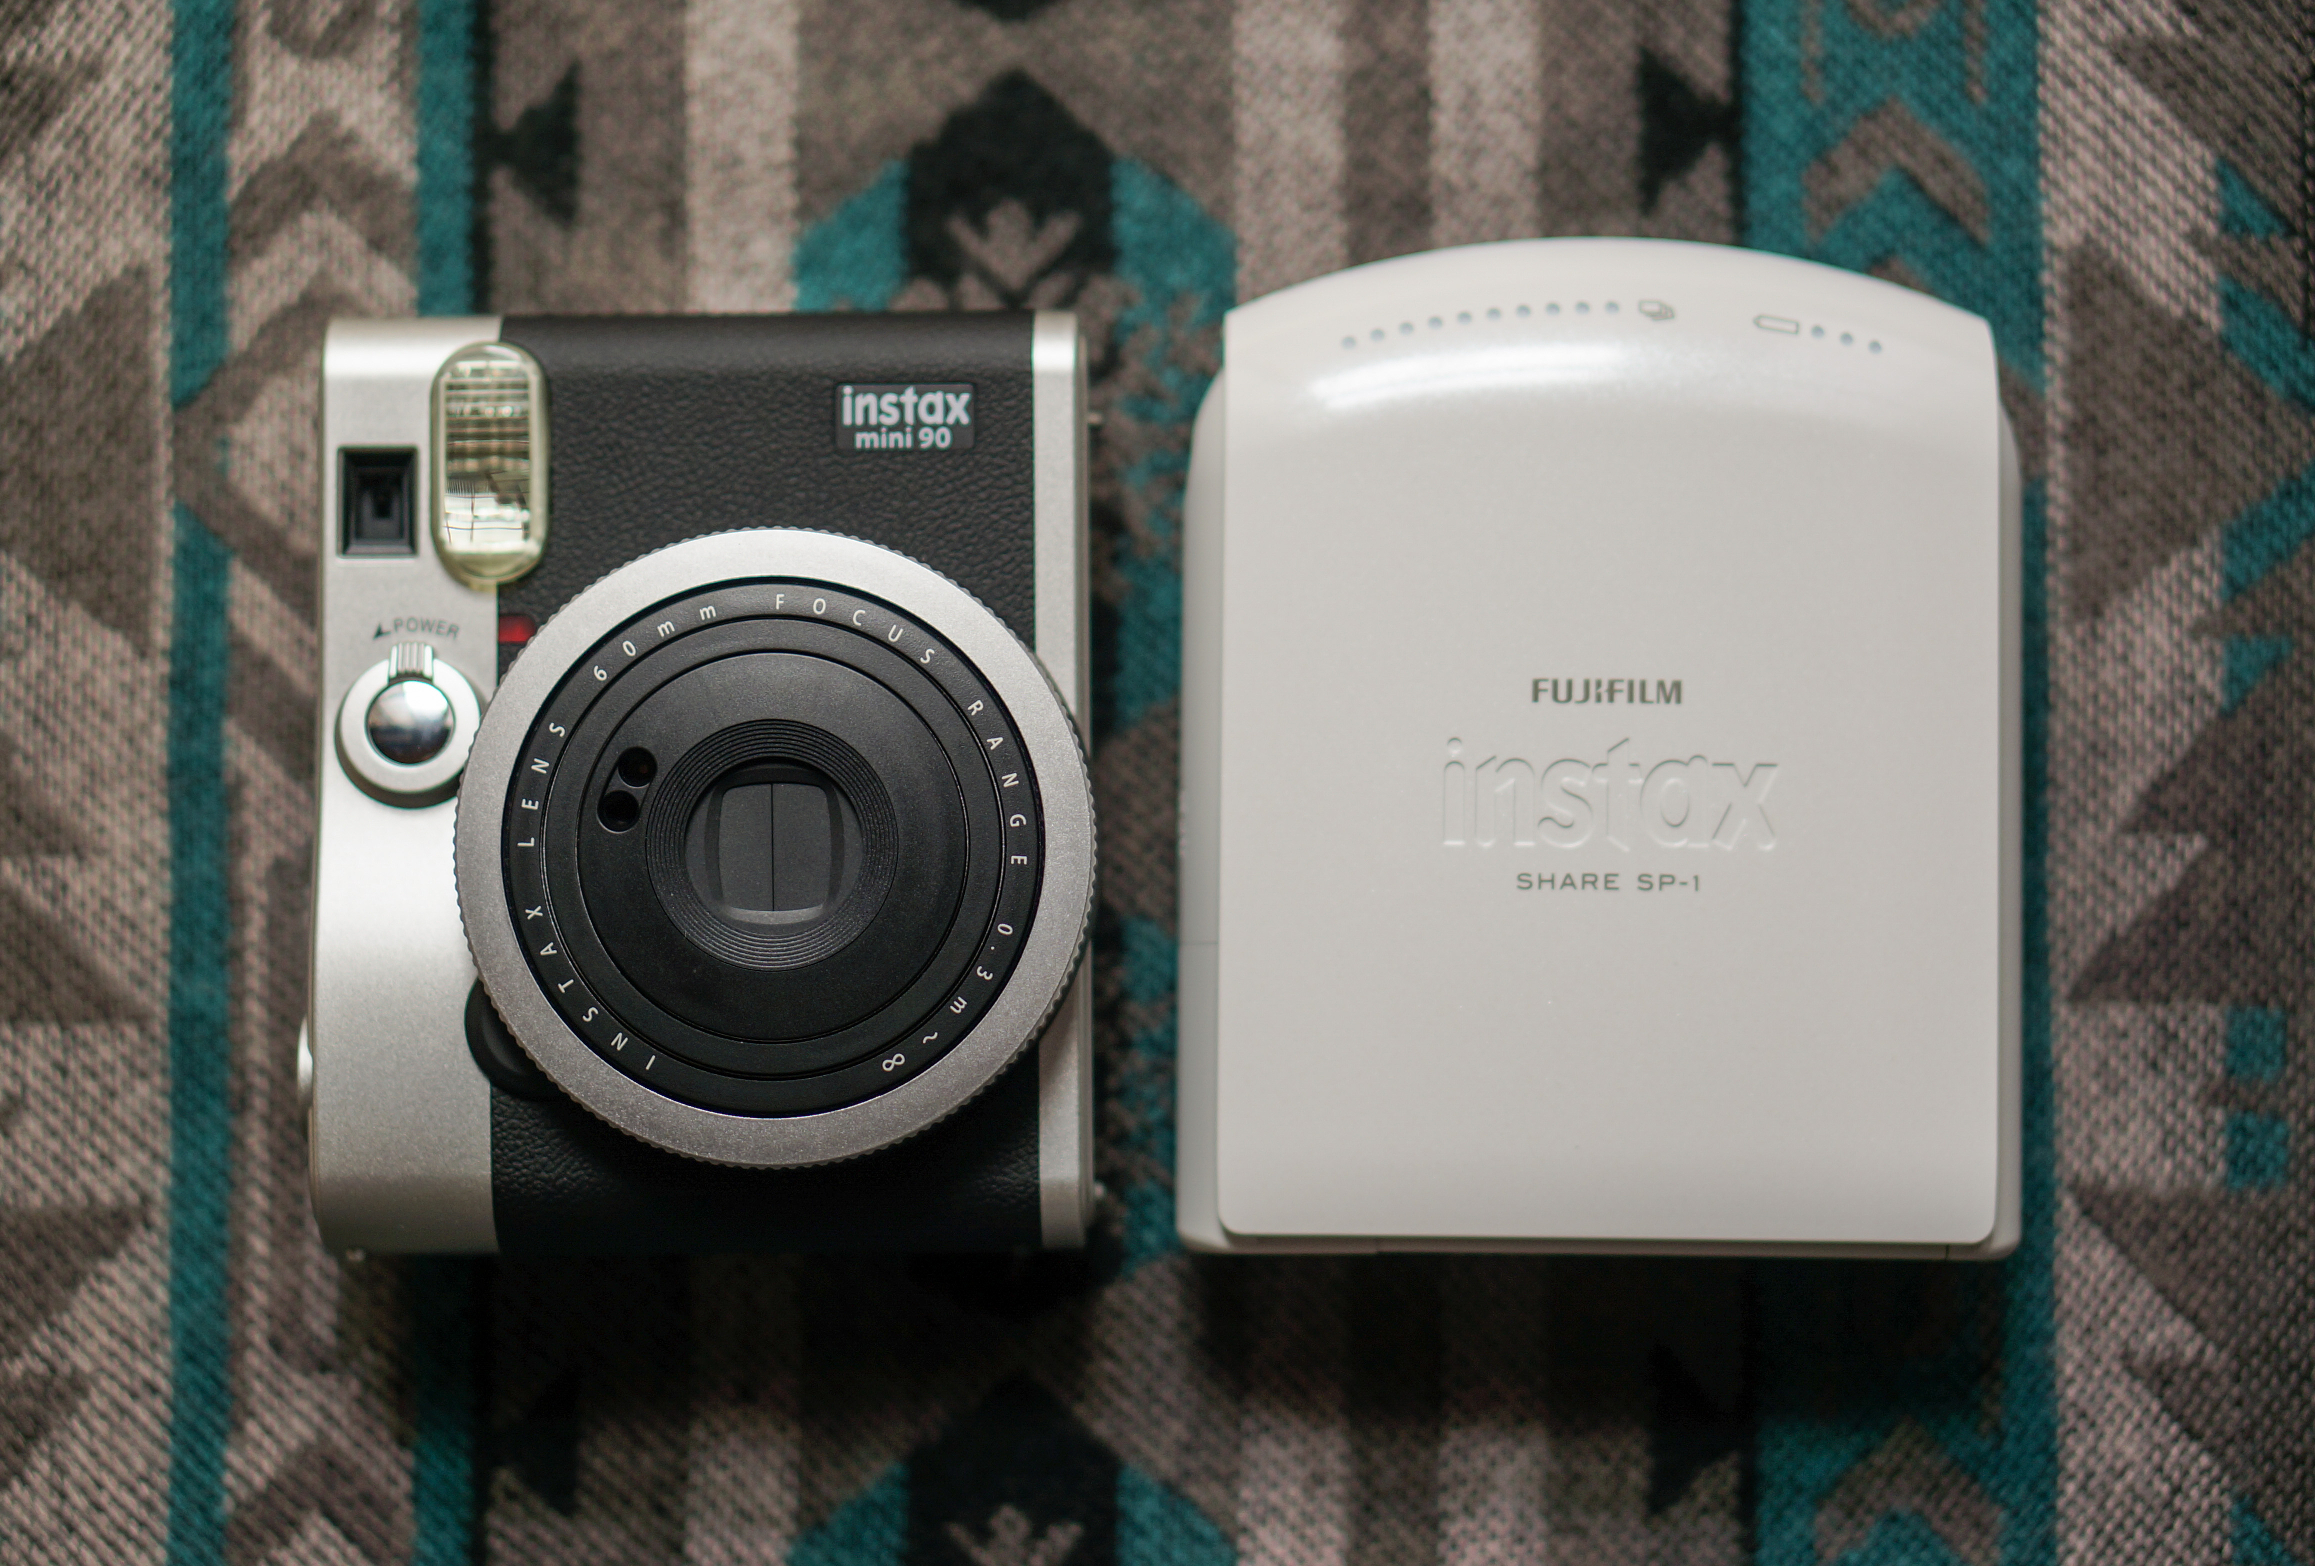 instax mini 90 と instax SHARE SP-1